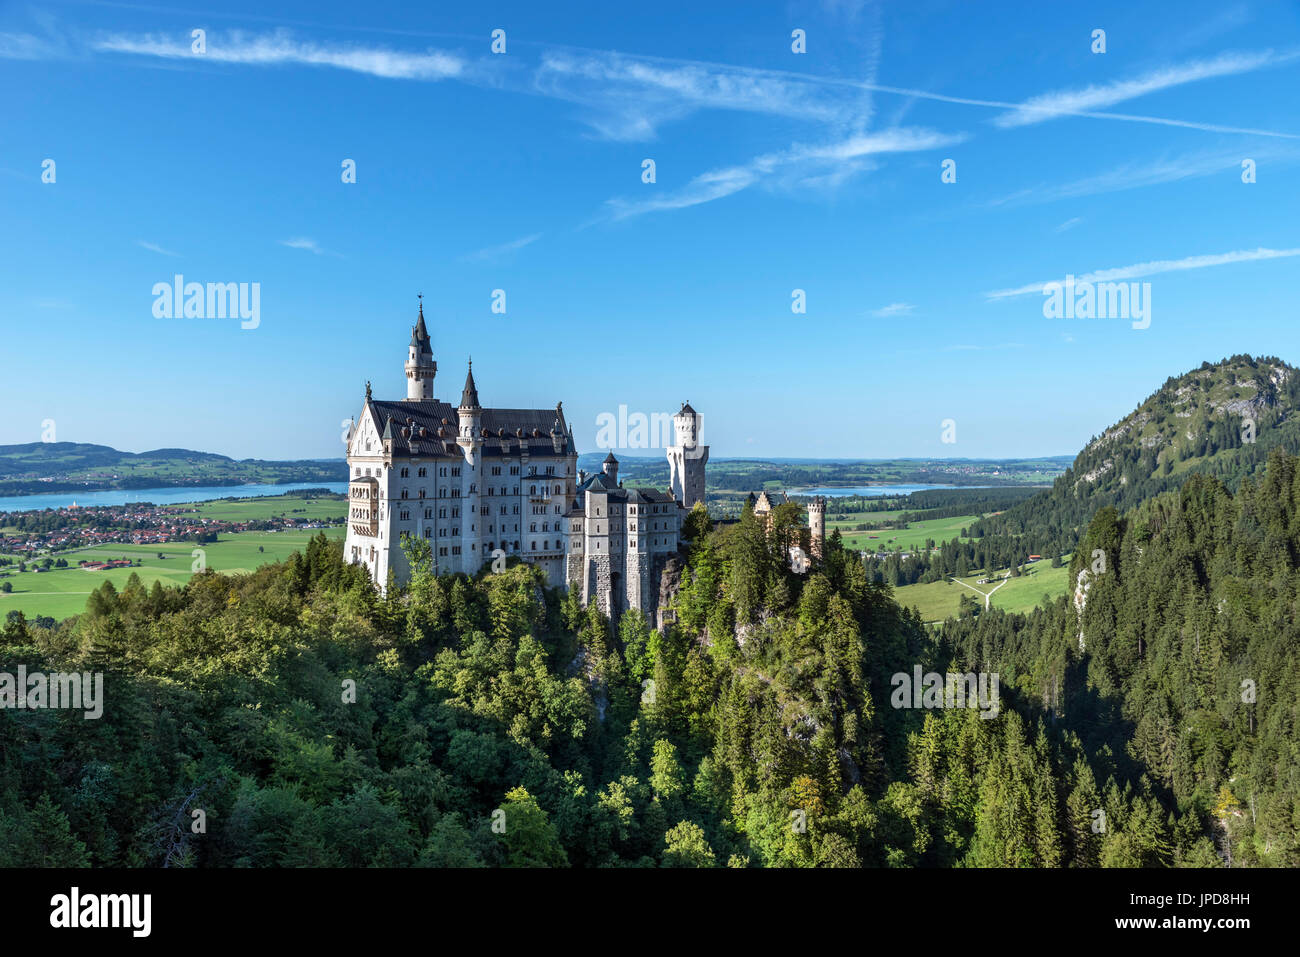 Neuschwanstein Castle (Schloss Neuschwanstein), the fairytale palace built by King Ludwig II of Bavaria, Hohenschwangau, Germany - Stock Image